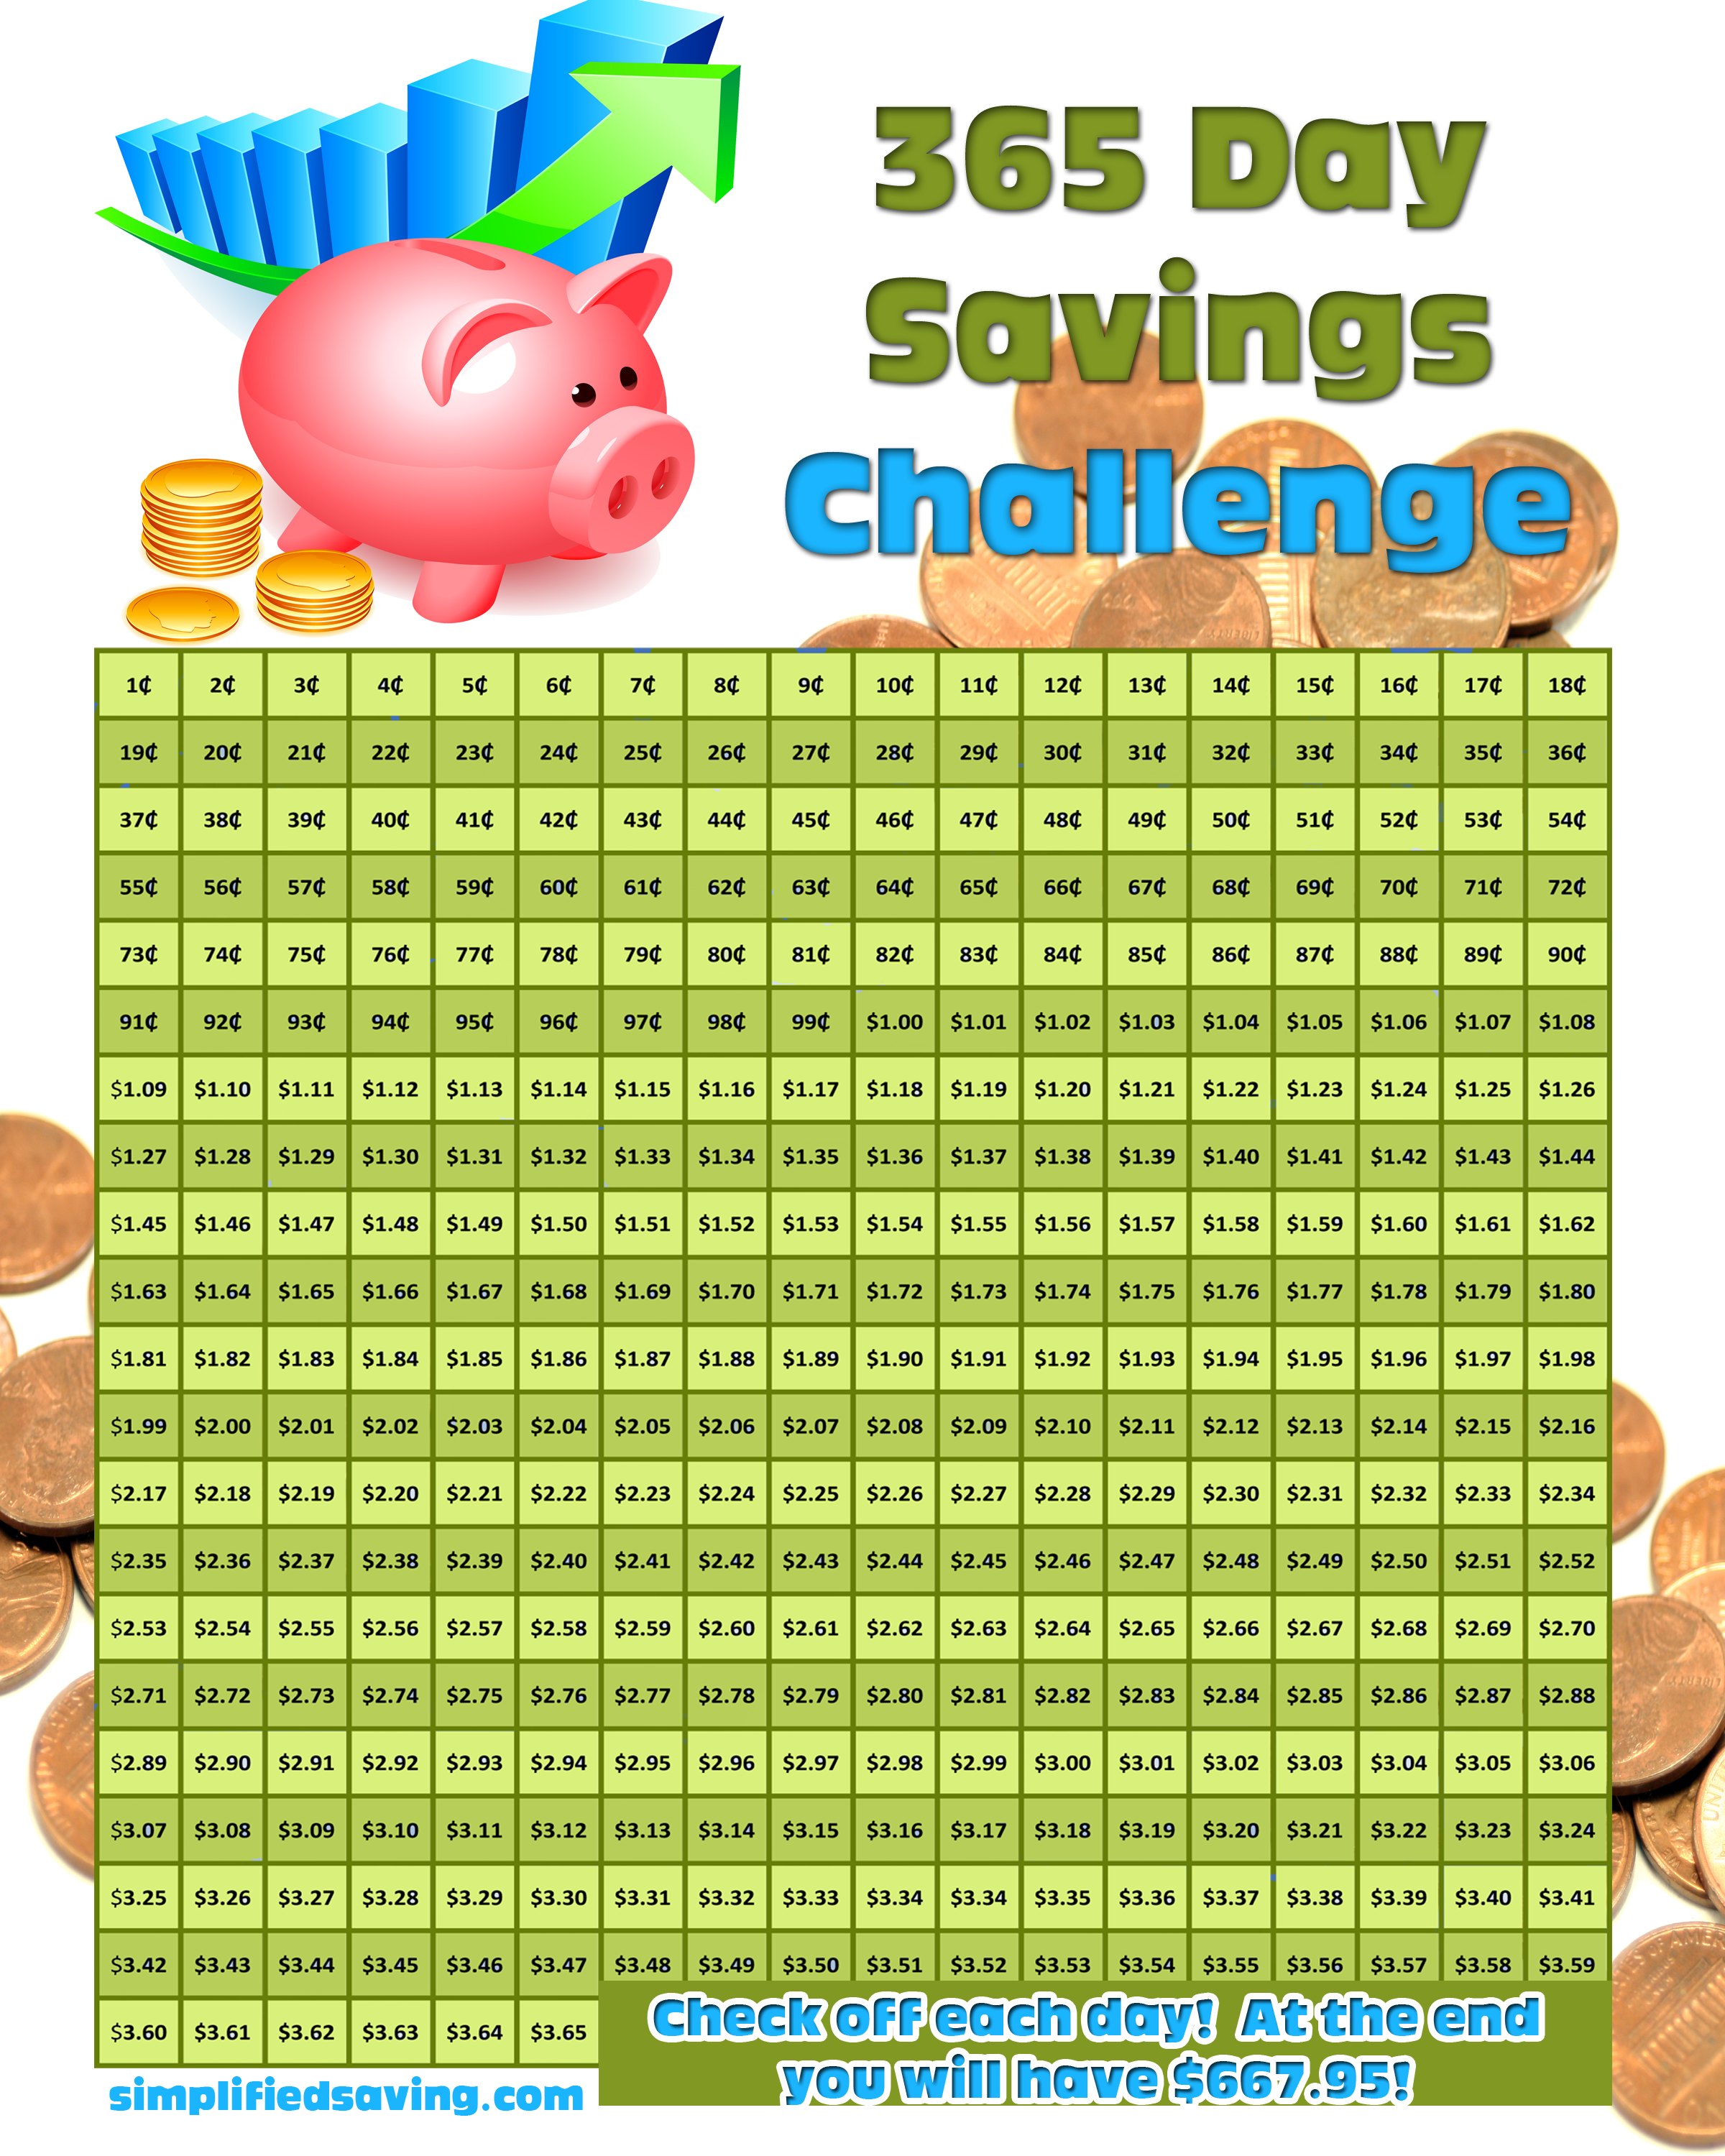 365 Day Savings Challenge Starts With One Penny Savings Challenge Money Saving Challenge Budgeting Money